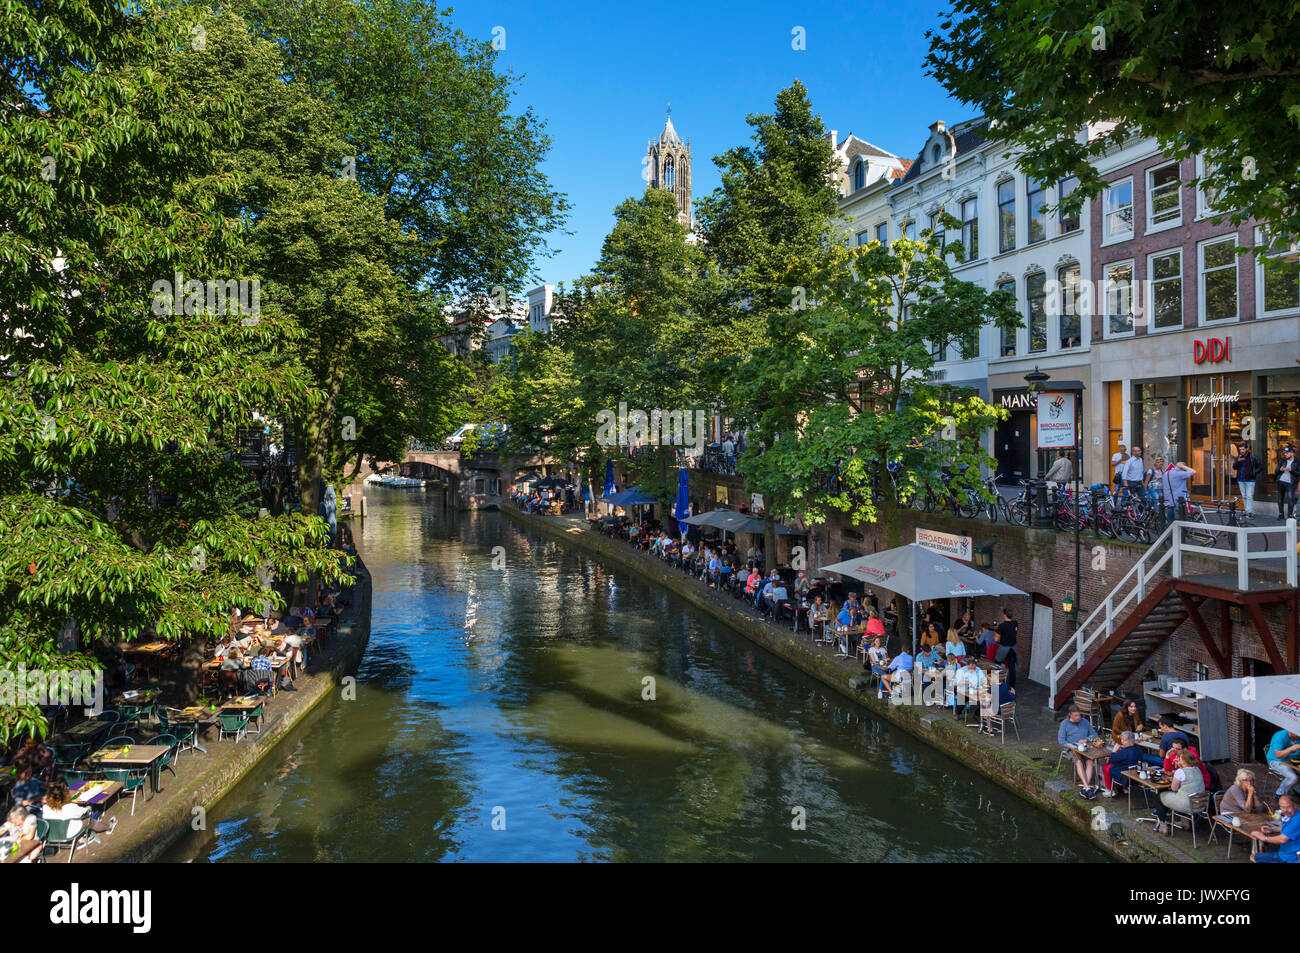 Utrecht Netherlands High Resolution Stock Photography And Images Alamy